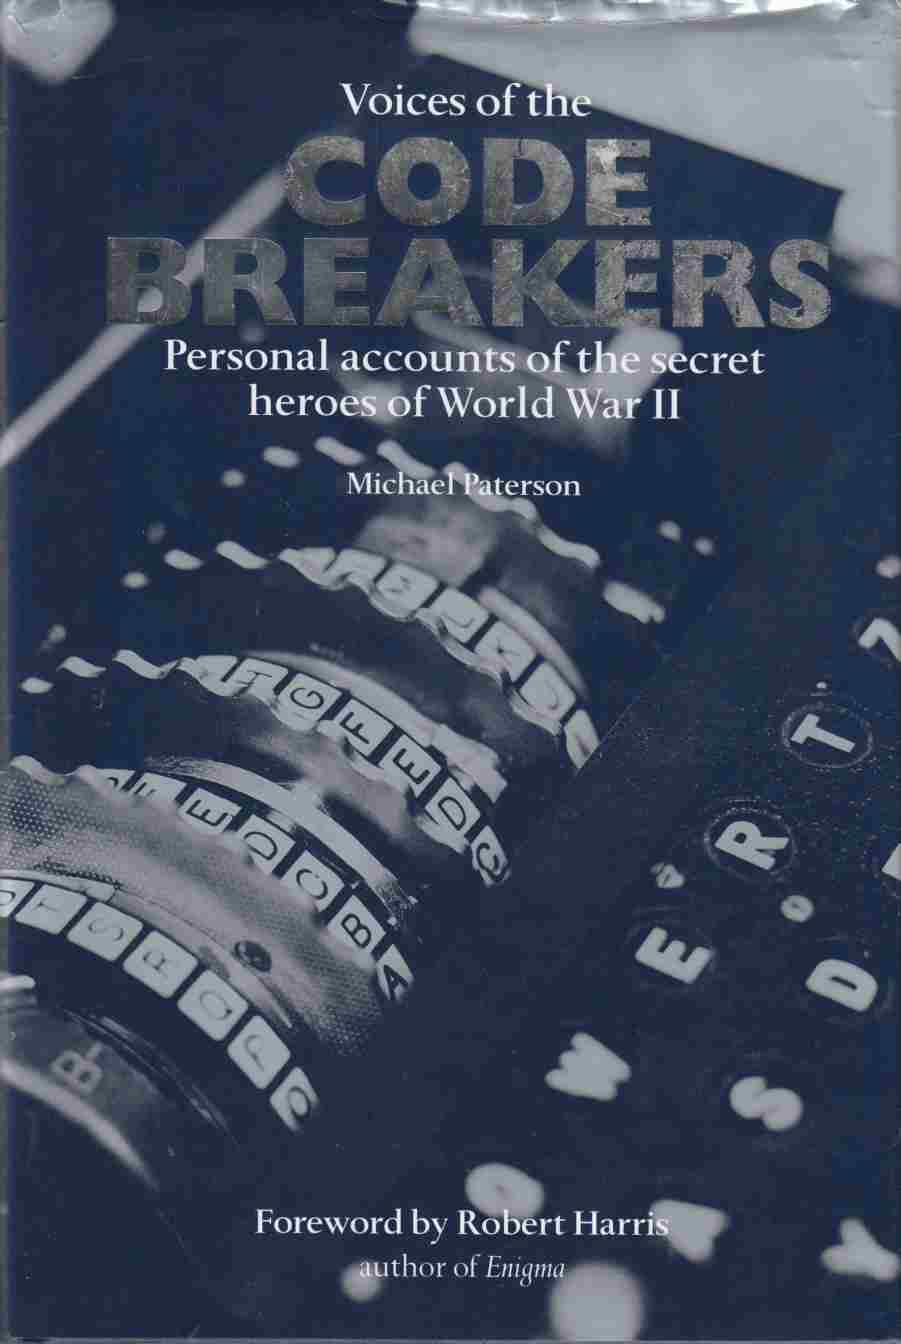 Image for Voices of the Code Breakers Personal Accounts of the Secret Heroes of World War II